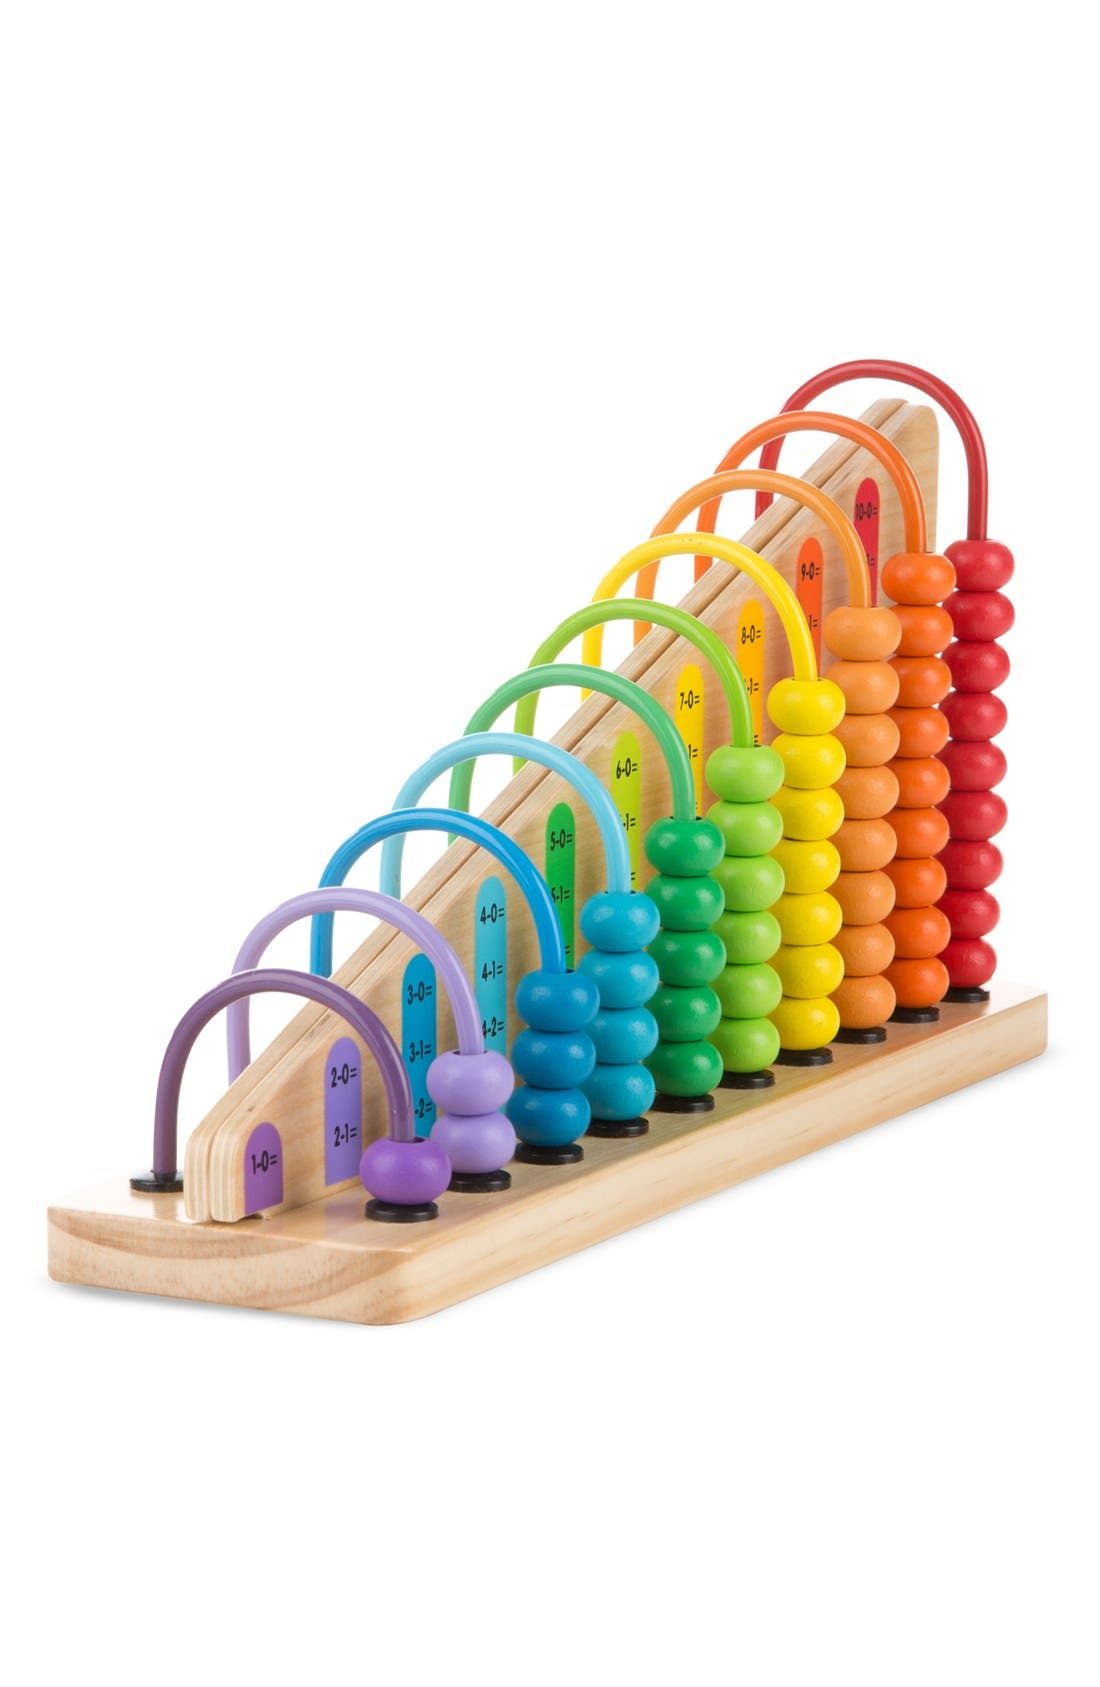 Toddler Melissa  Doug Add And Subtract Abacus